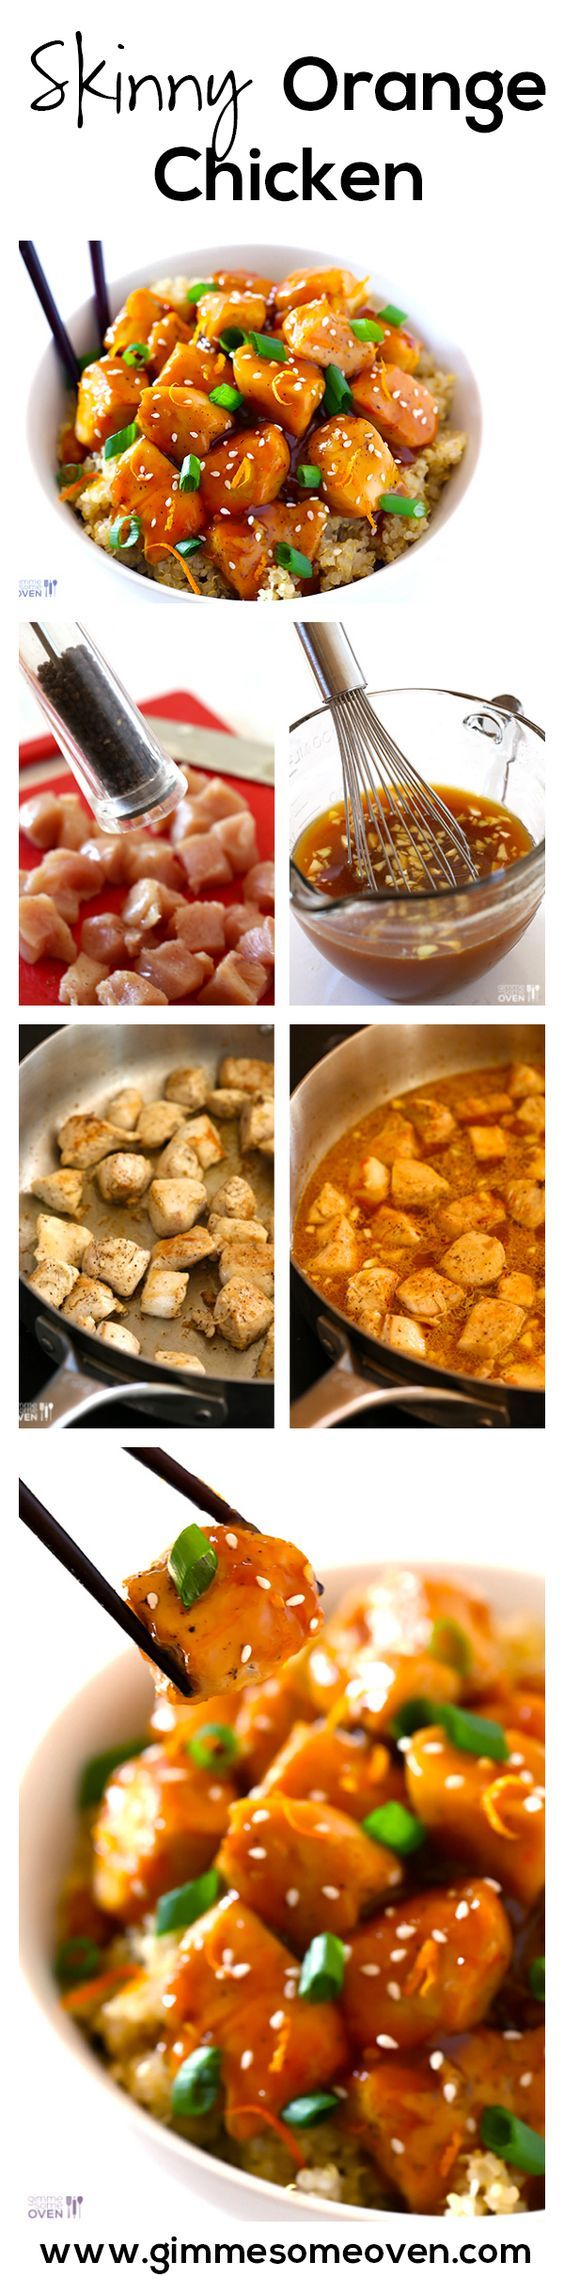 SKINNY Orange Chicken Recipe -- All of the flavor you love without all of the calories! |SKINNY Orange Chicken Recipe -- All of the flavor you love without all of the calories! |gimmesomeovenSKINNY Orange Chicken Recipe -- All of the flavor you love without all of the calories! |SKINNY Orange Chicken Recipe -- All of the flavor you love without all of the calories! |gimmesomeoven